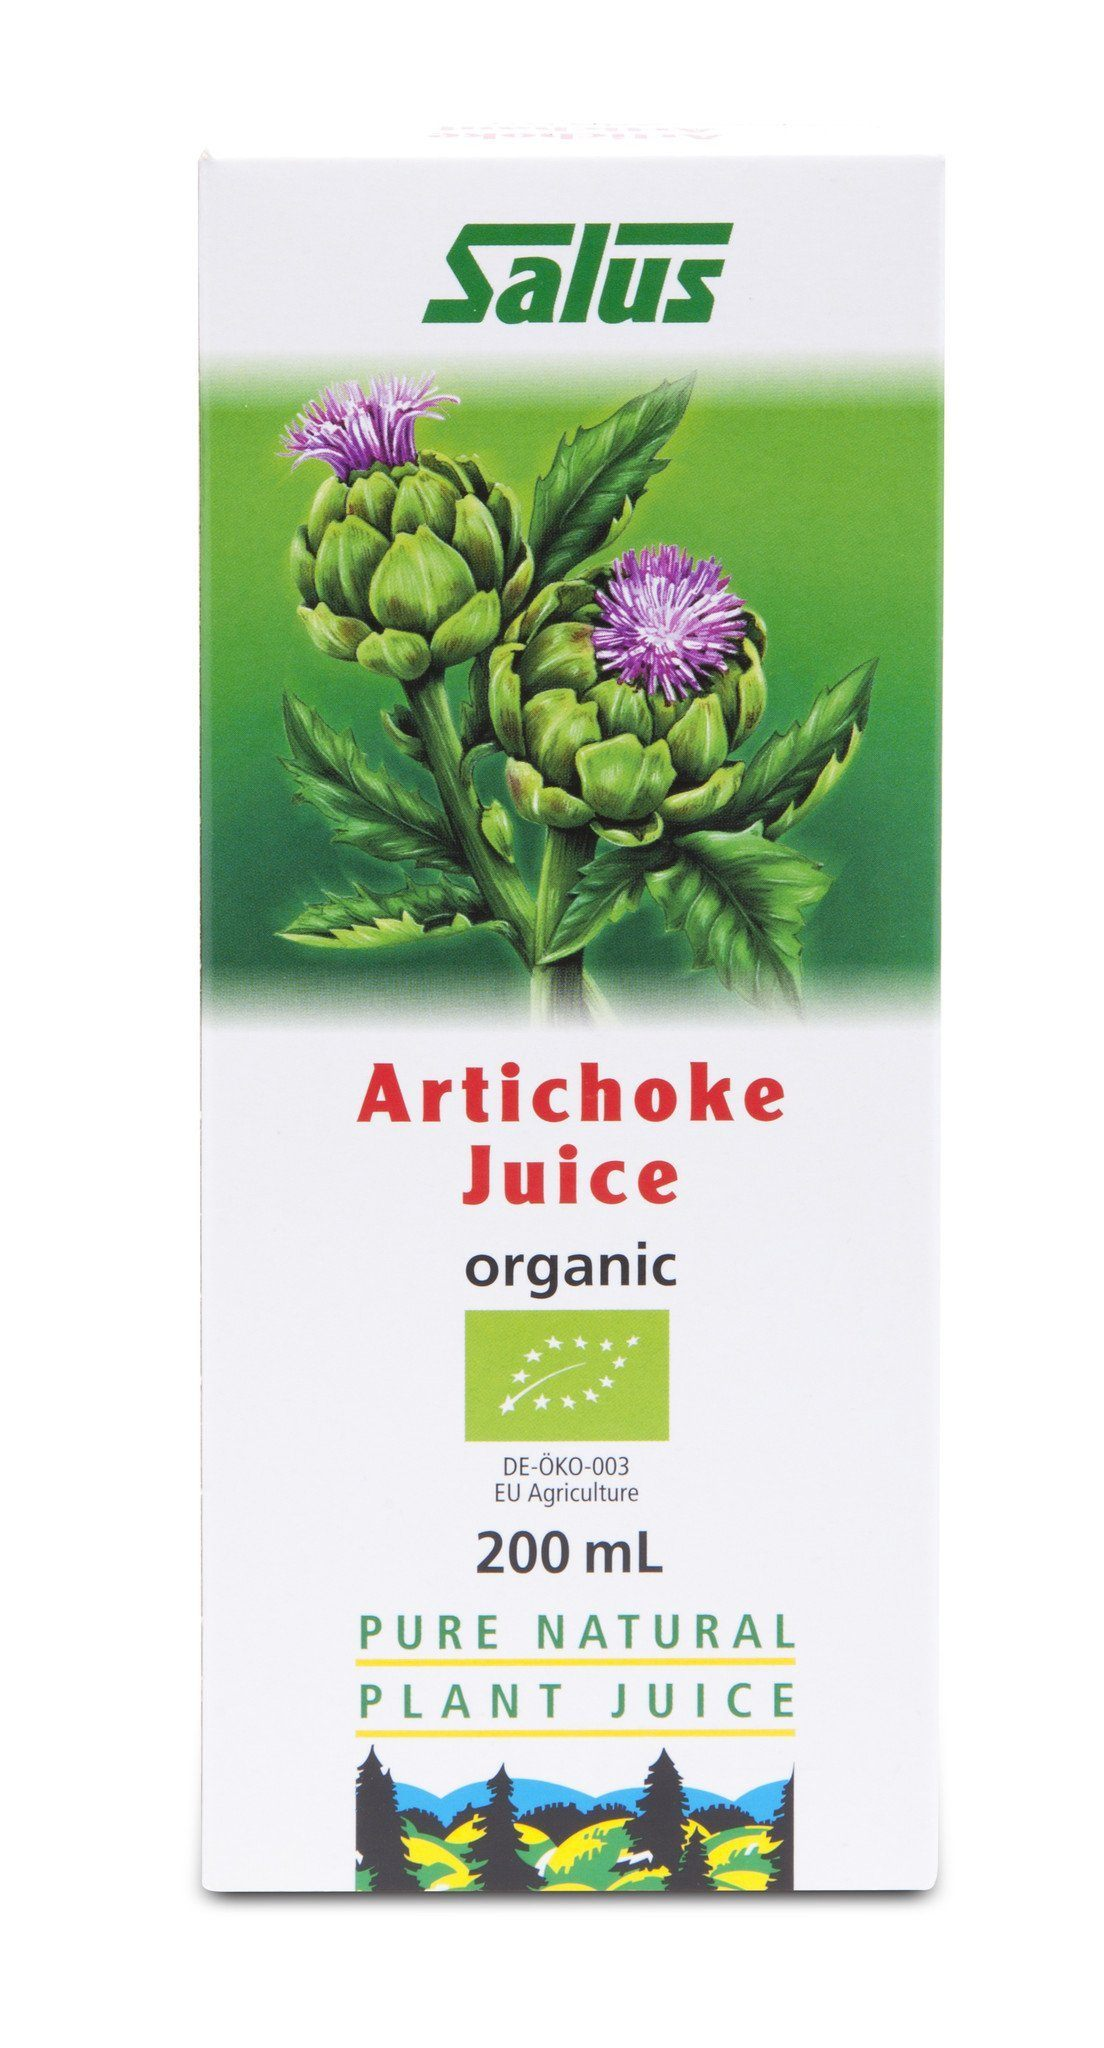 Supplements & Vitamins - Salus - Artichoke Juice, 200ml